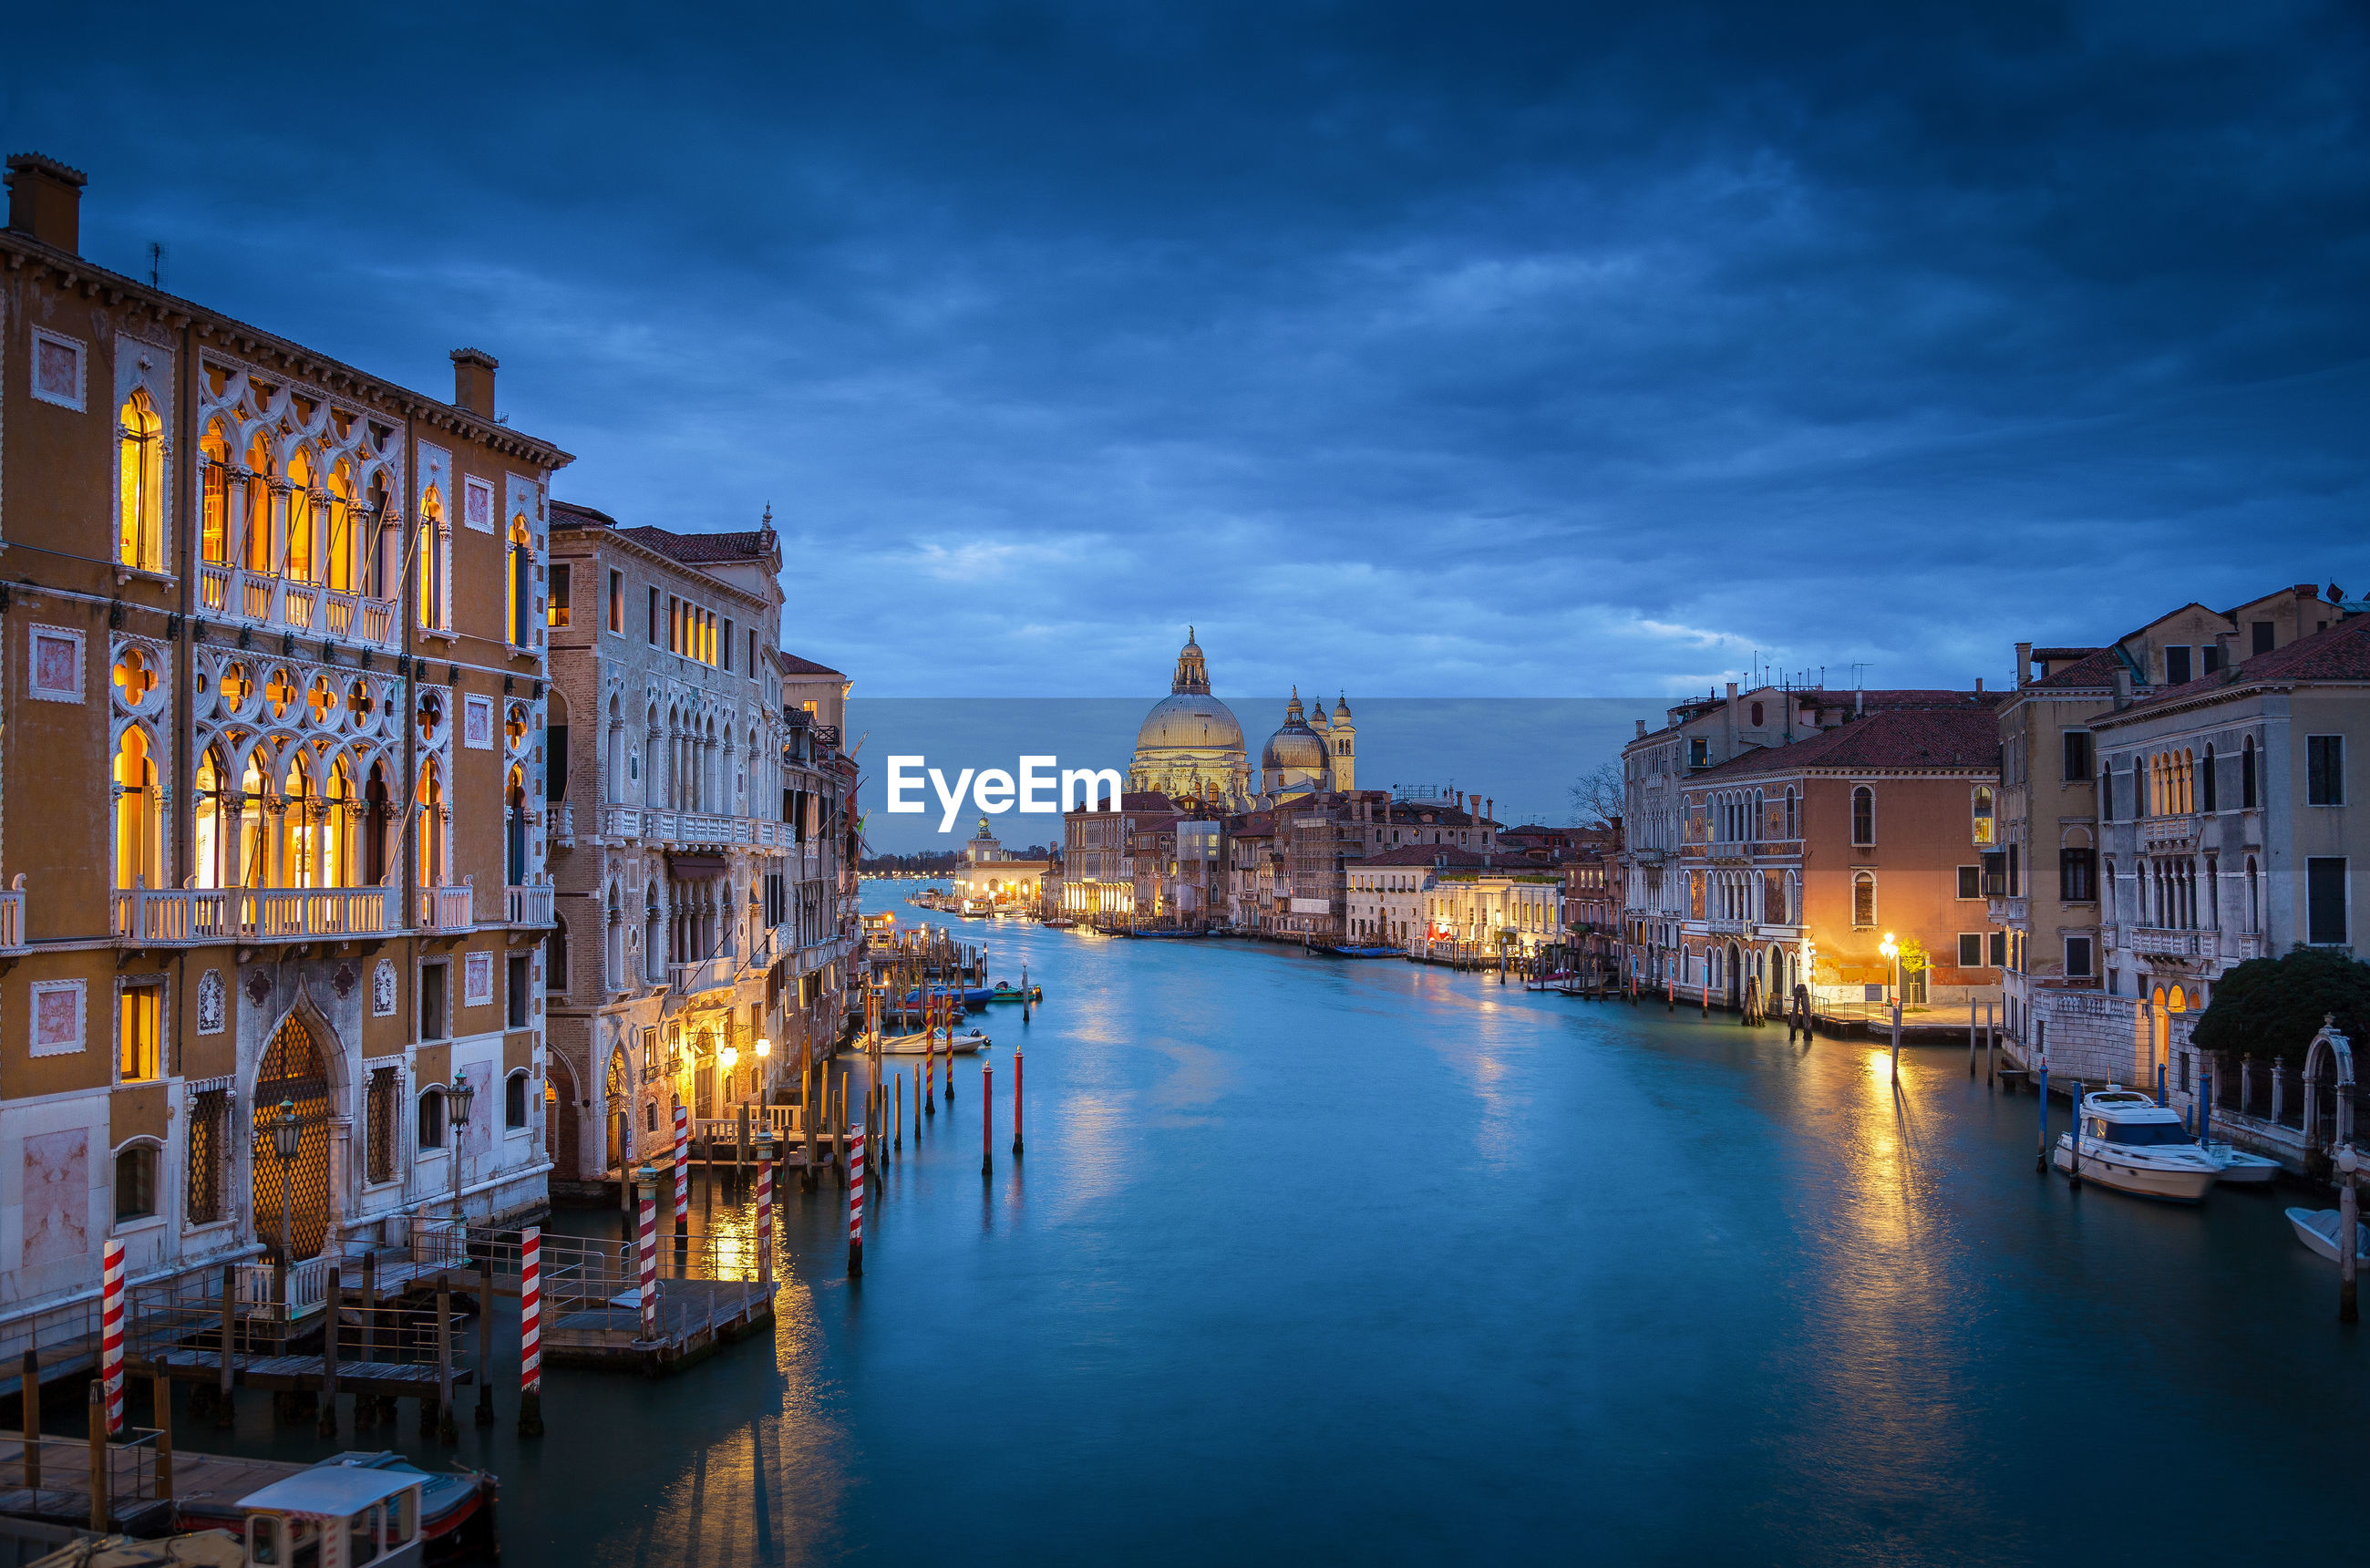 Grand canal amidst illuminated buildings in city at dusk